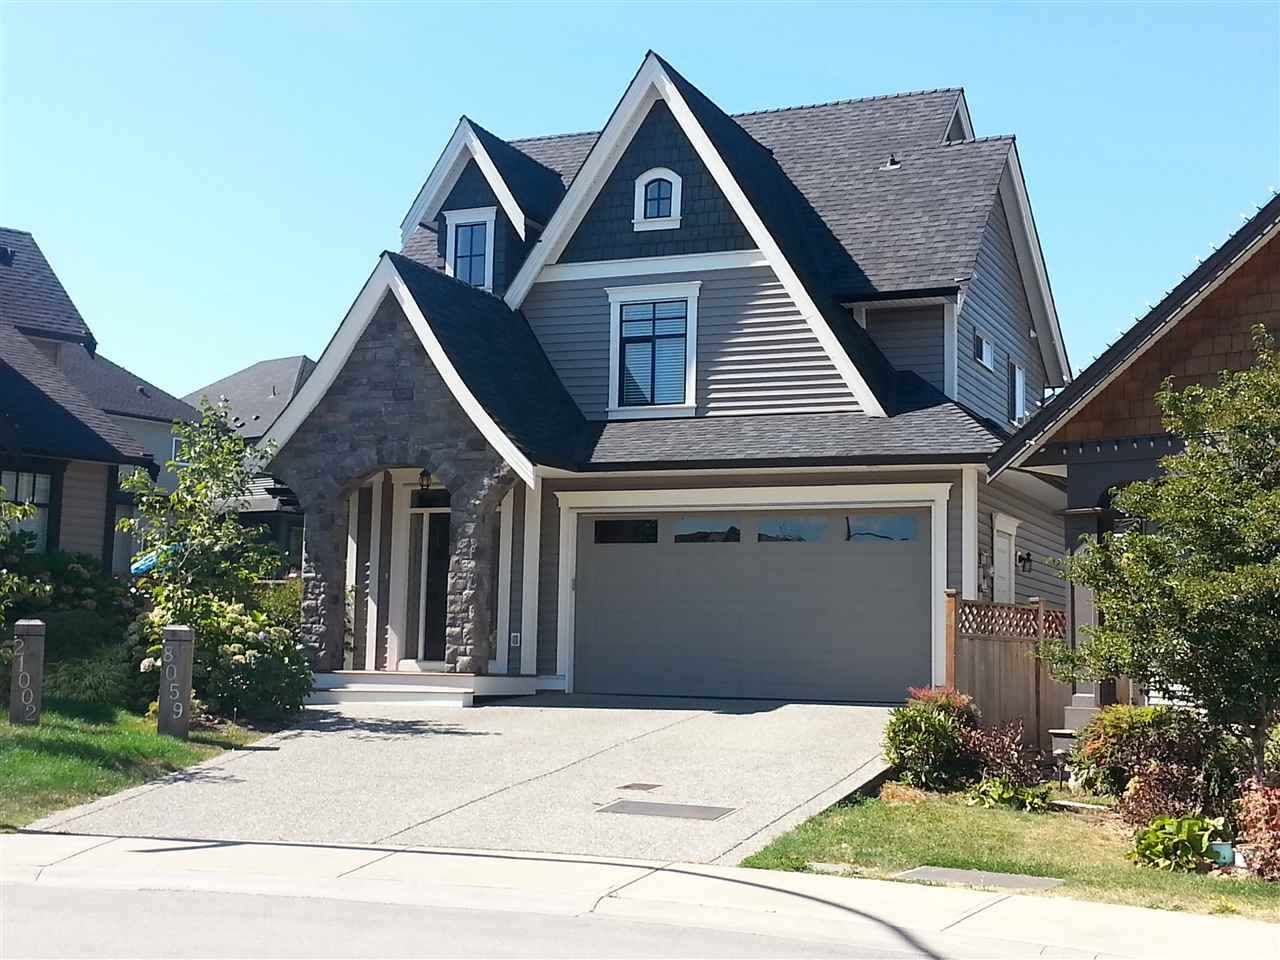 Main Photo: 8059 210 STREET in Langley: Willoughby Heights House for sale : MLS®# R2417539